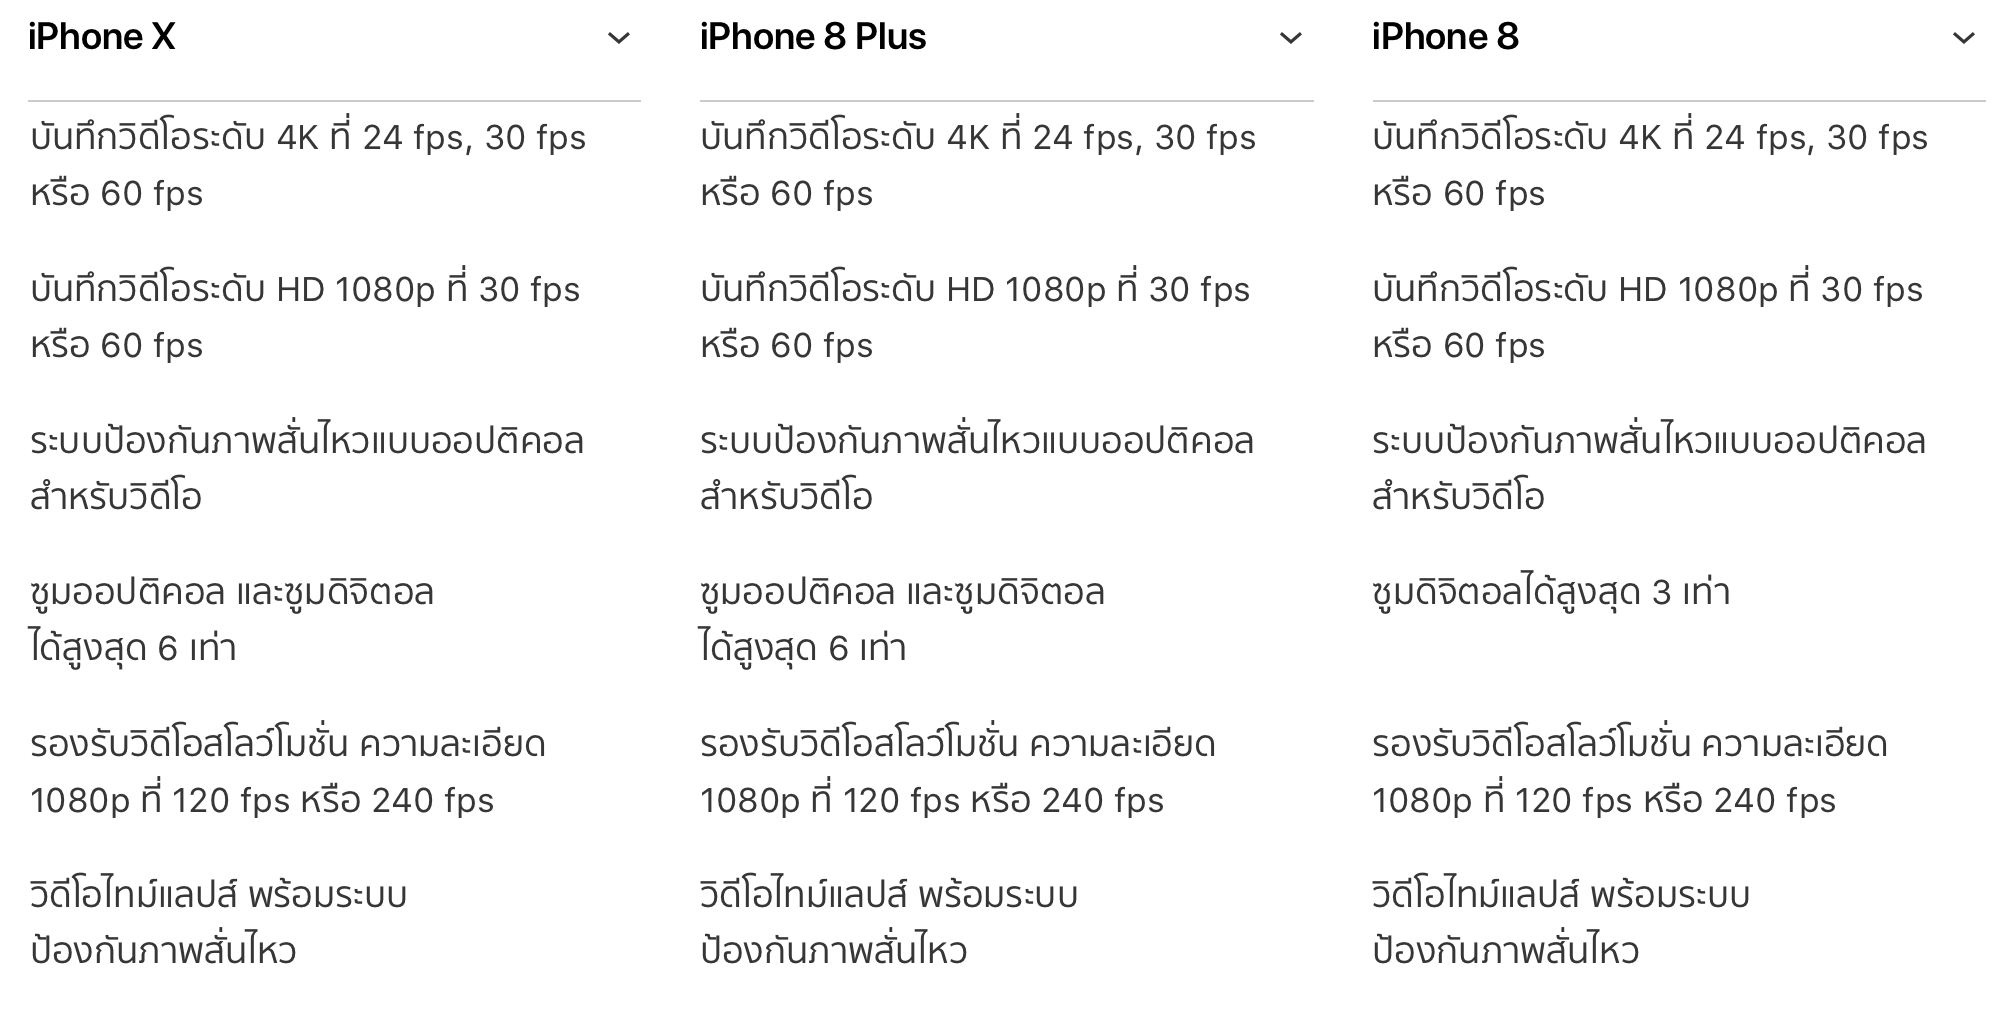 Compare-iPhone-X-iPhone-8-and-iPhone-8-Plus-00006